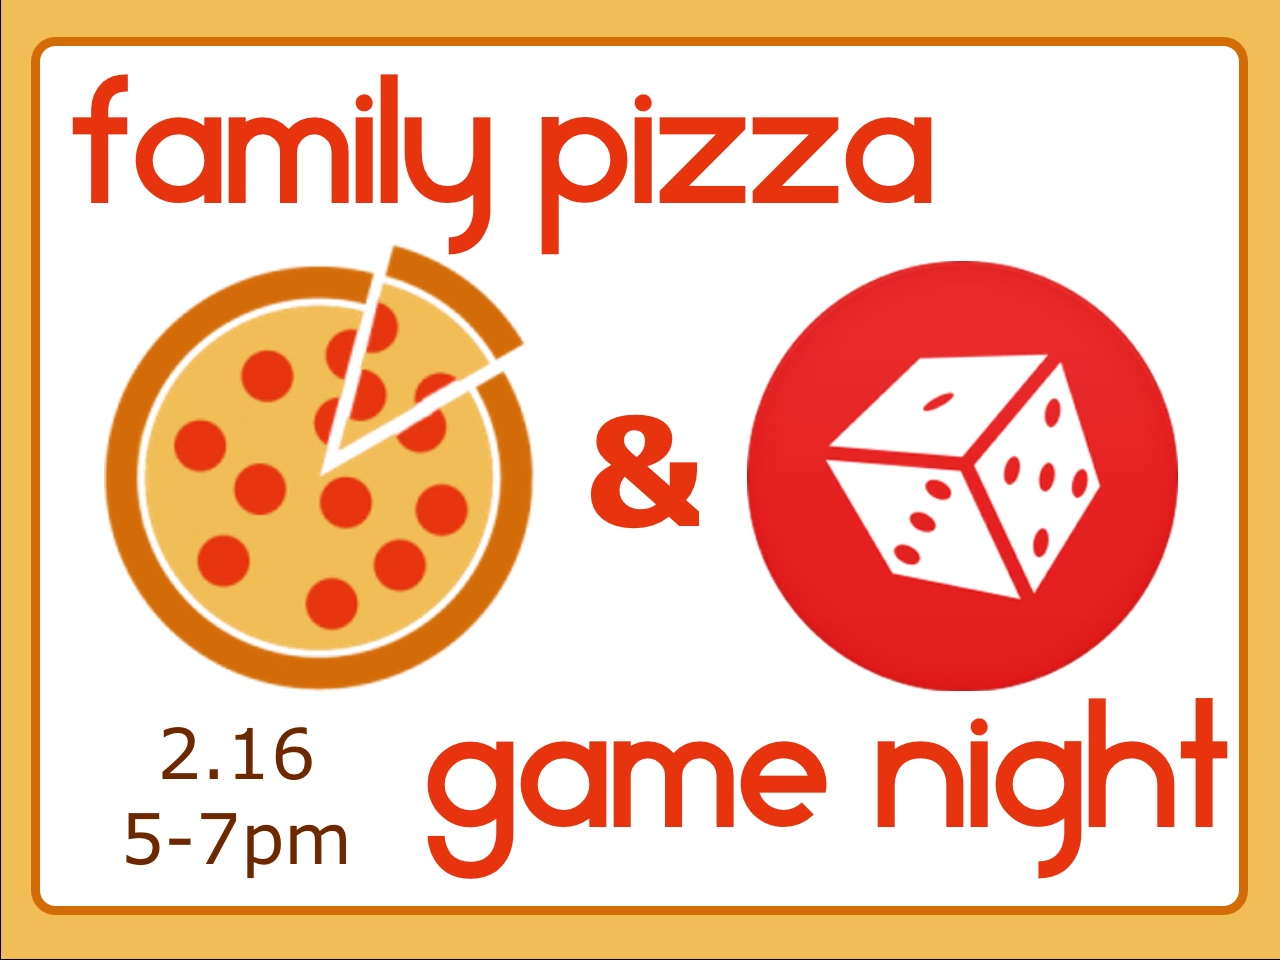 Bring the family out for a night of fun! To sign up, email kidzone@brookridge.org.